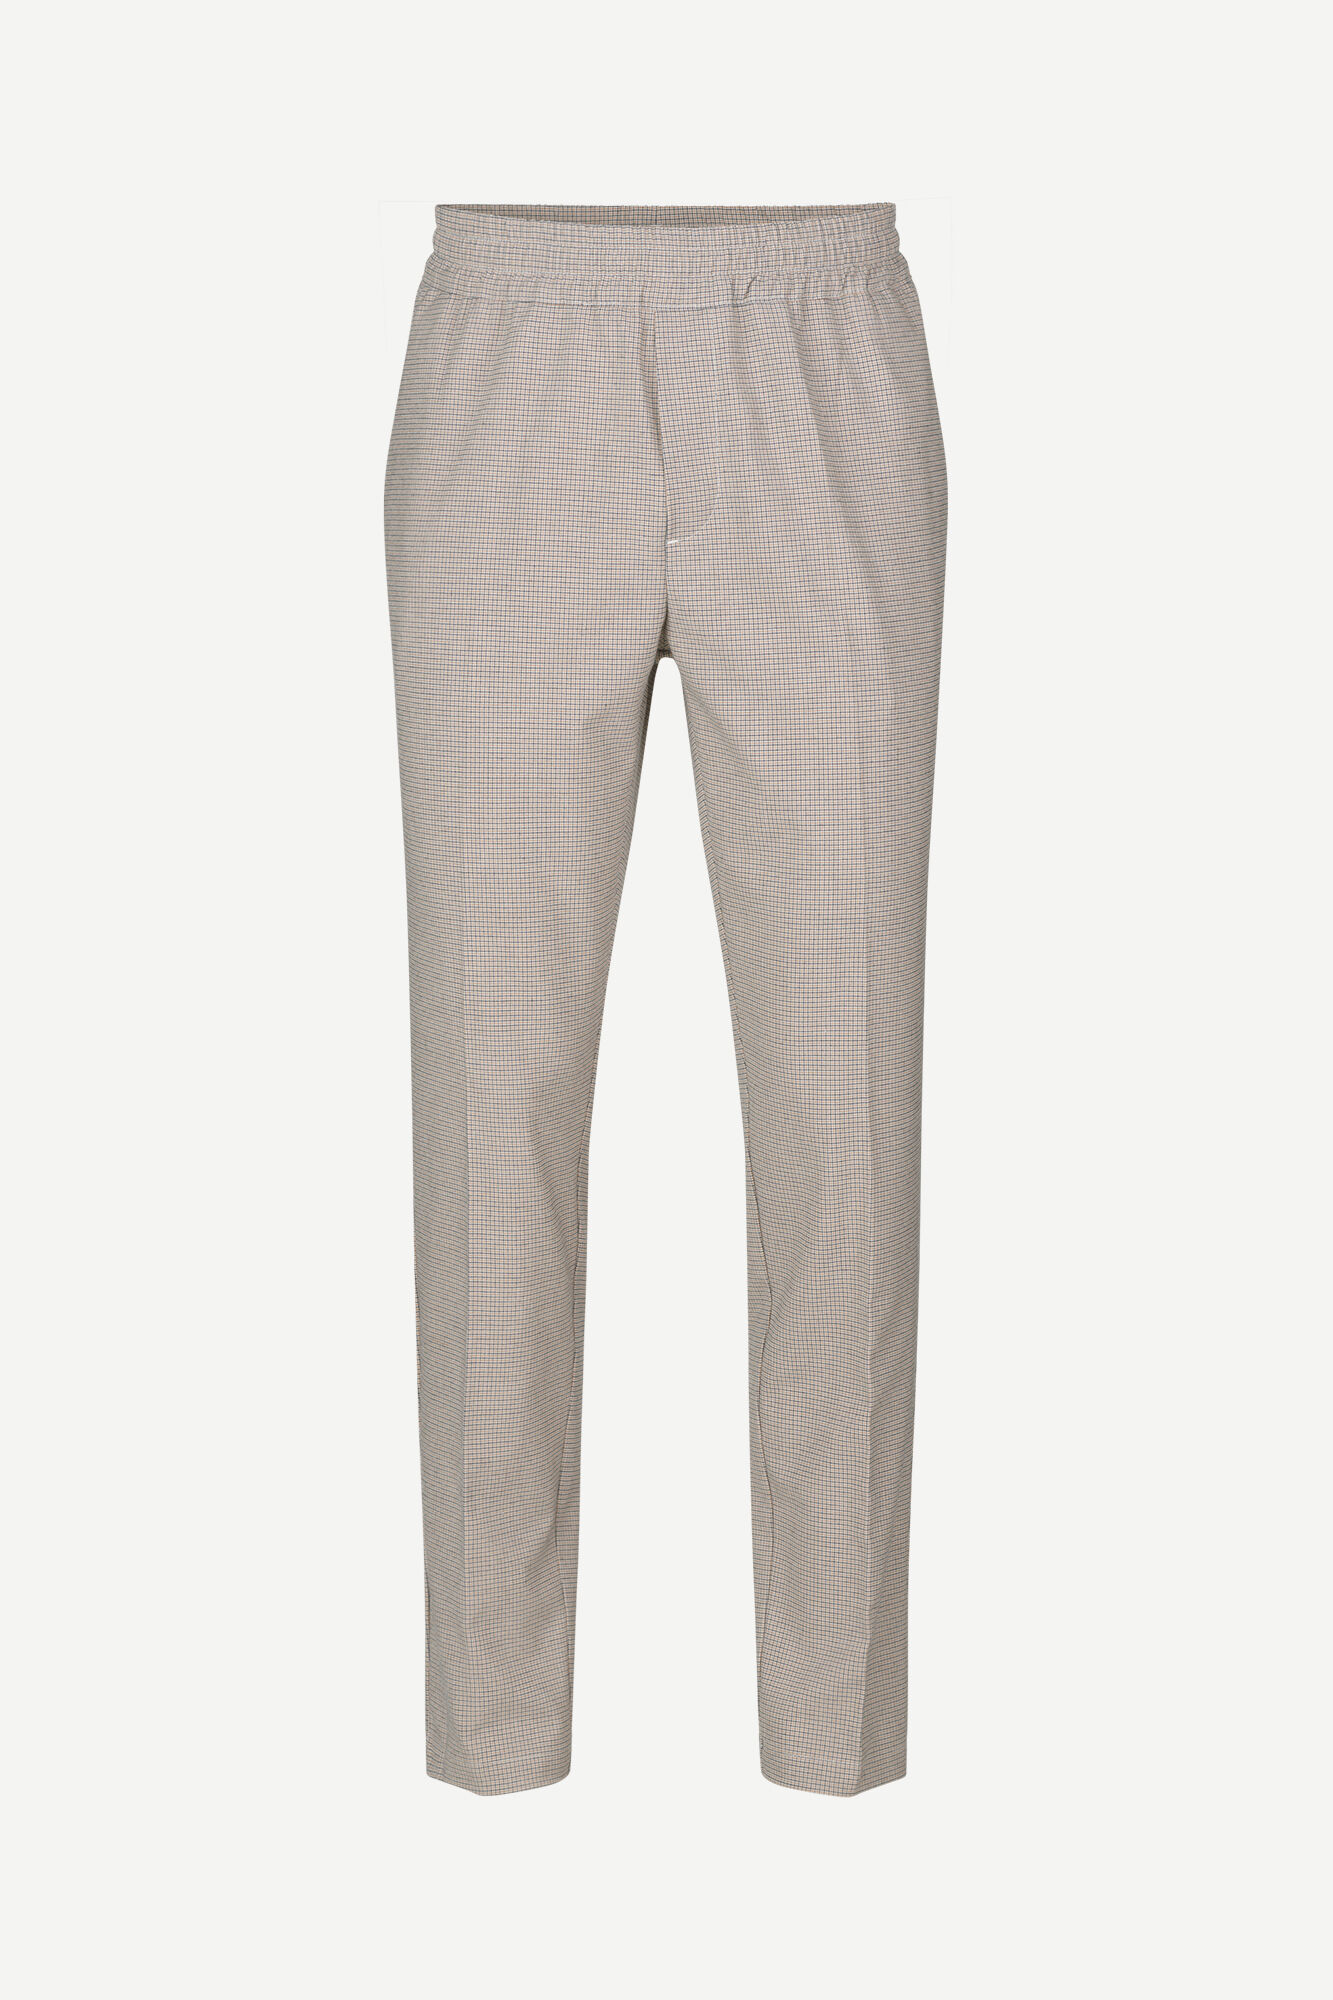 Smithy trousers 13079, HUMUS CH.